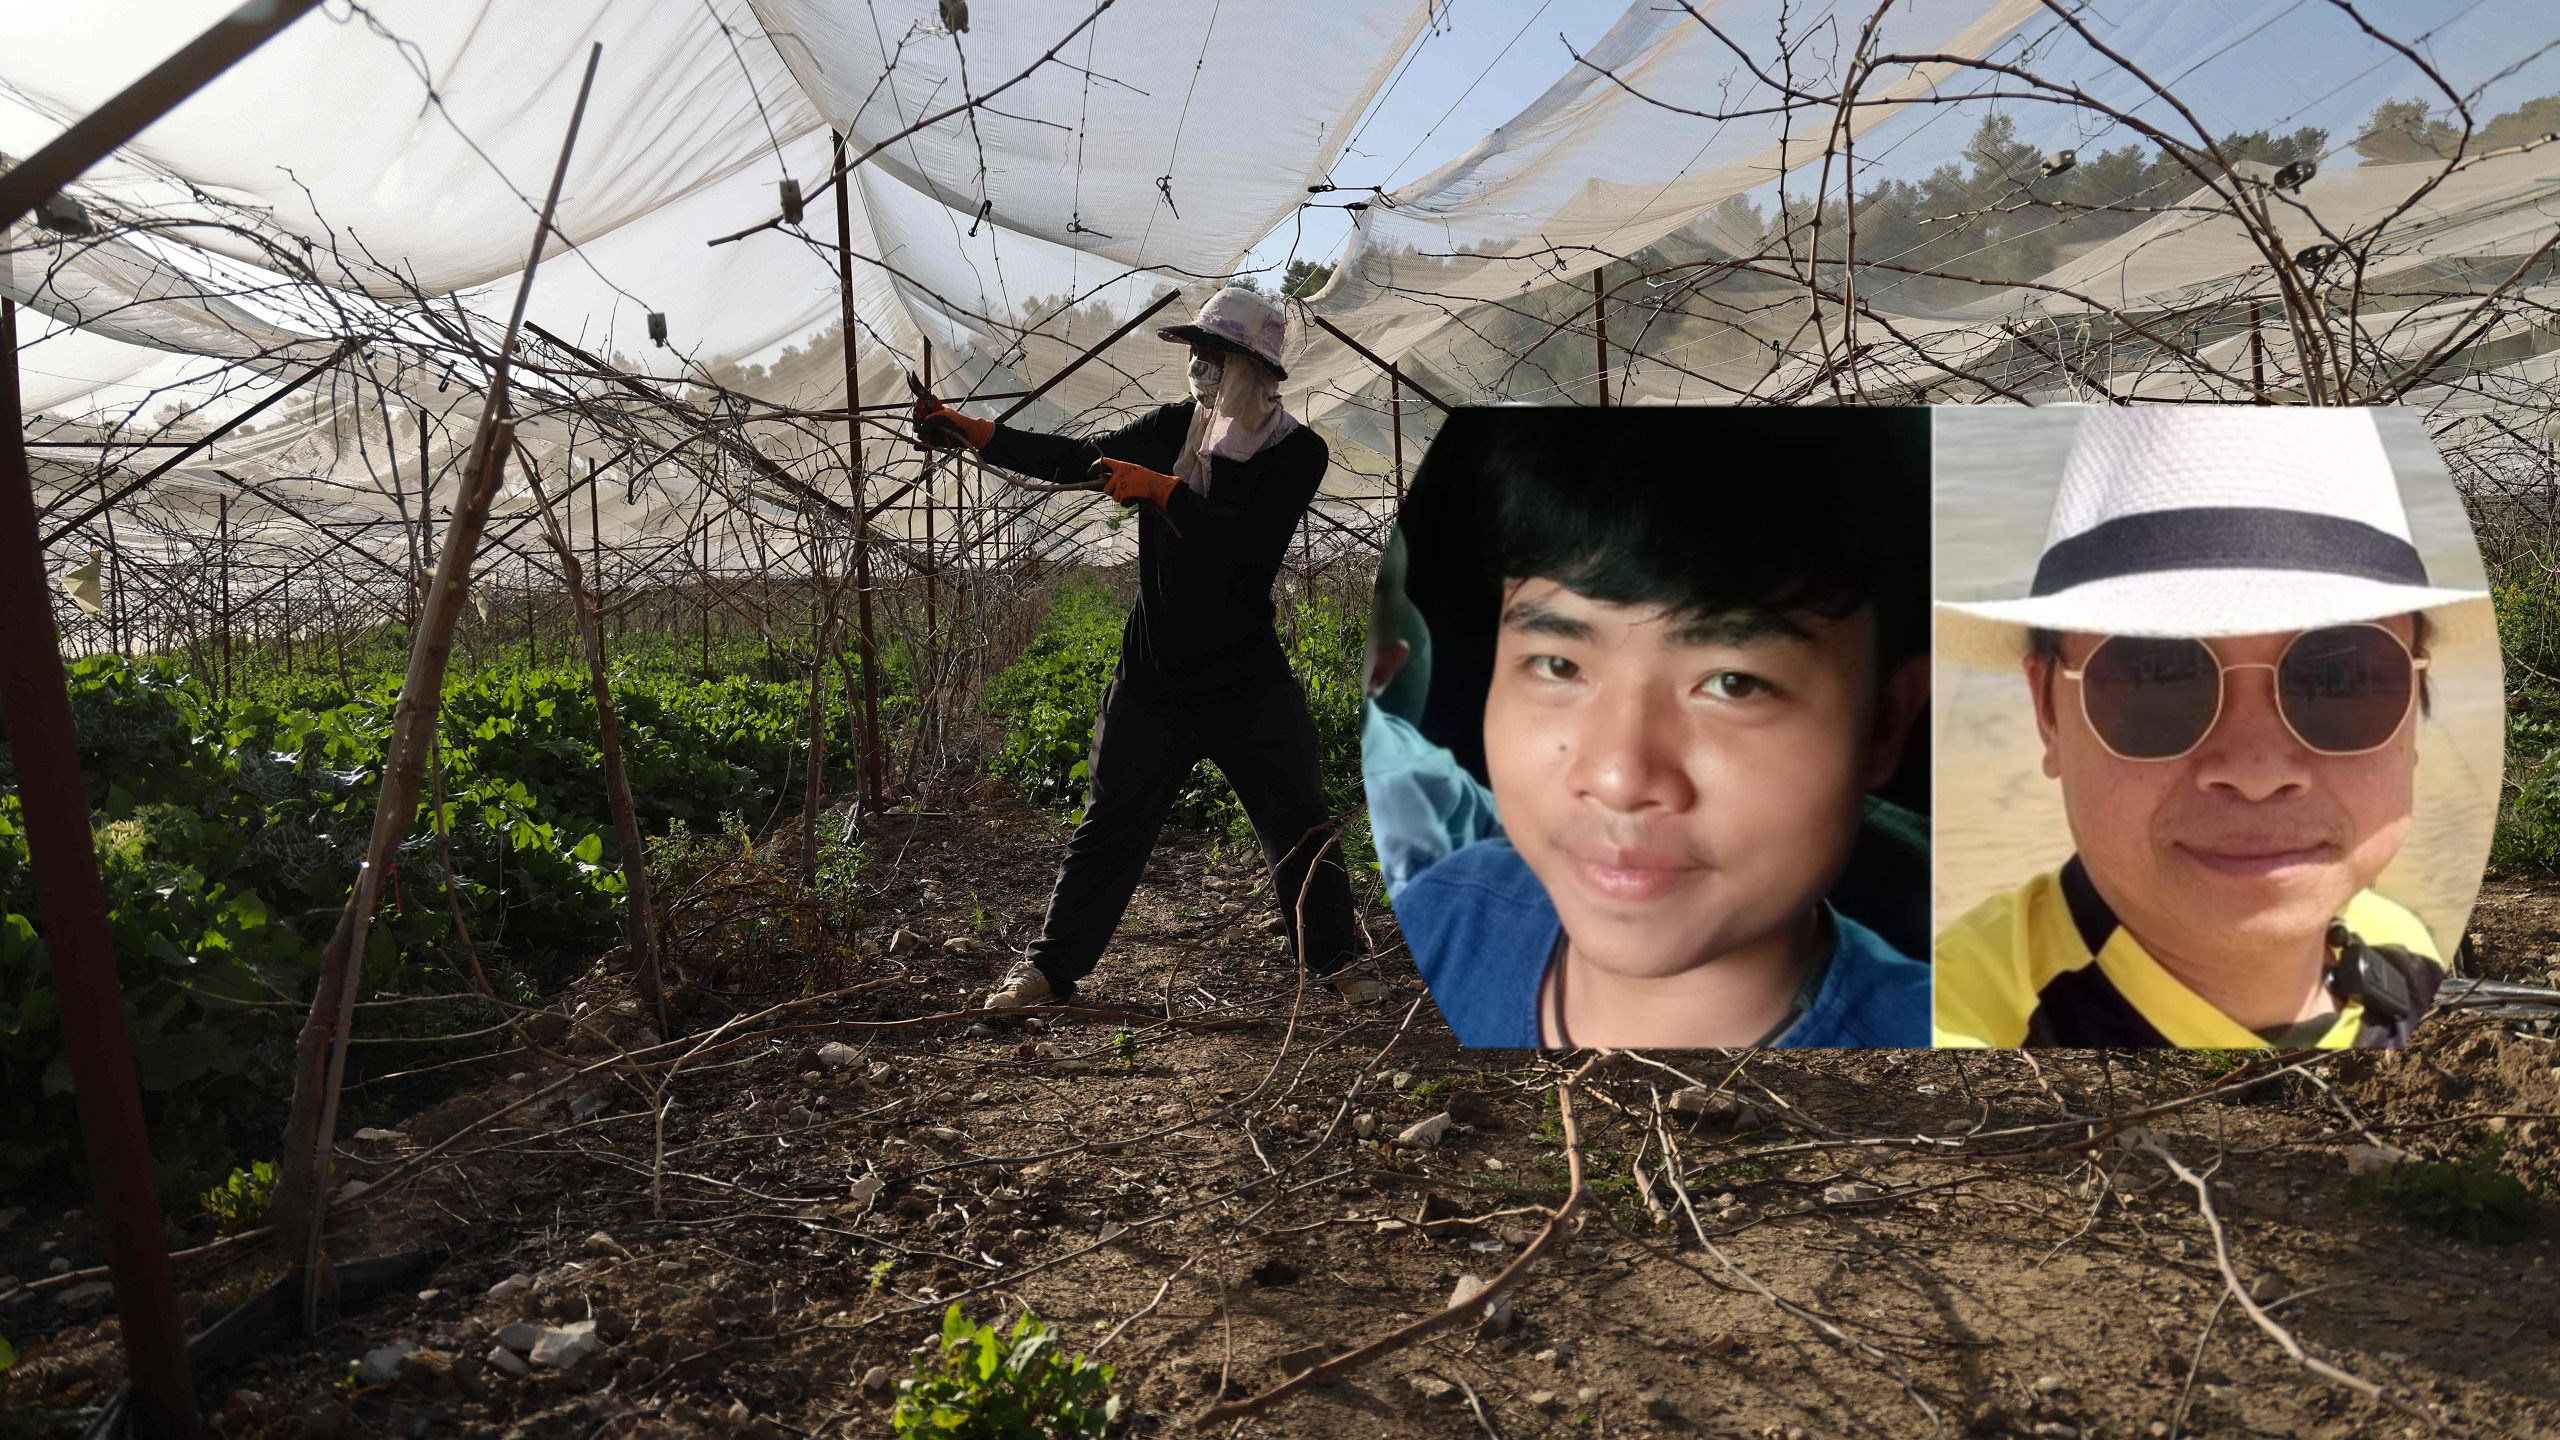 Thai Farmworkers Among Most Vulnerable in Israel to Hamas Rocket Fire